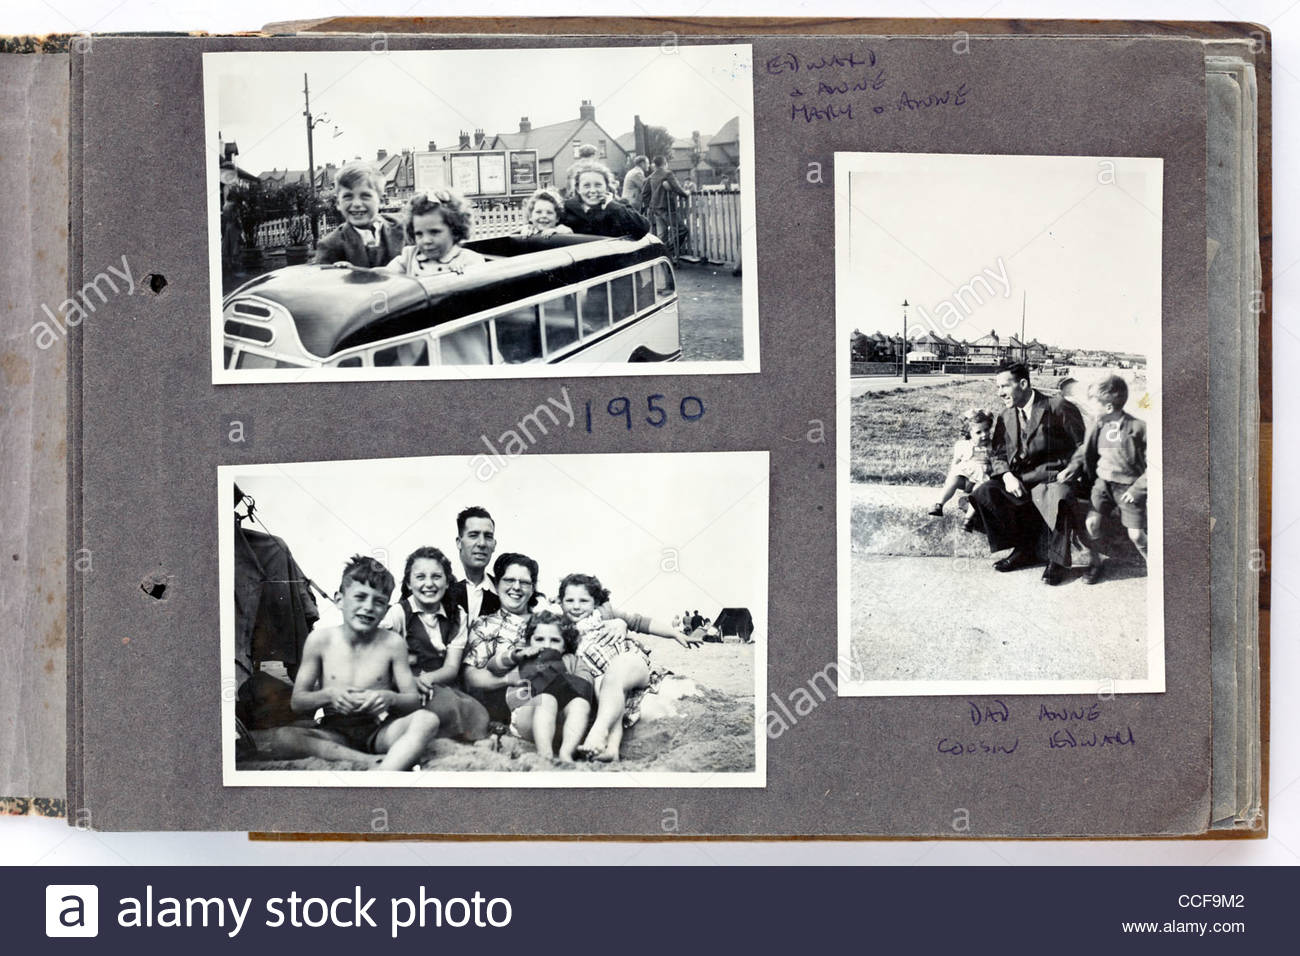 happy family moments photo album page 1950 England - Stock Image